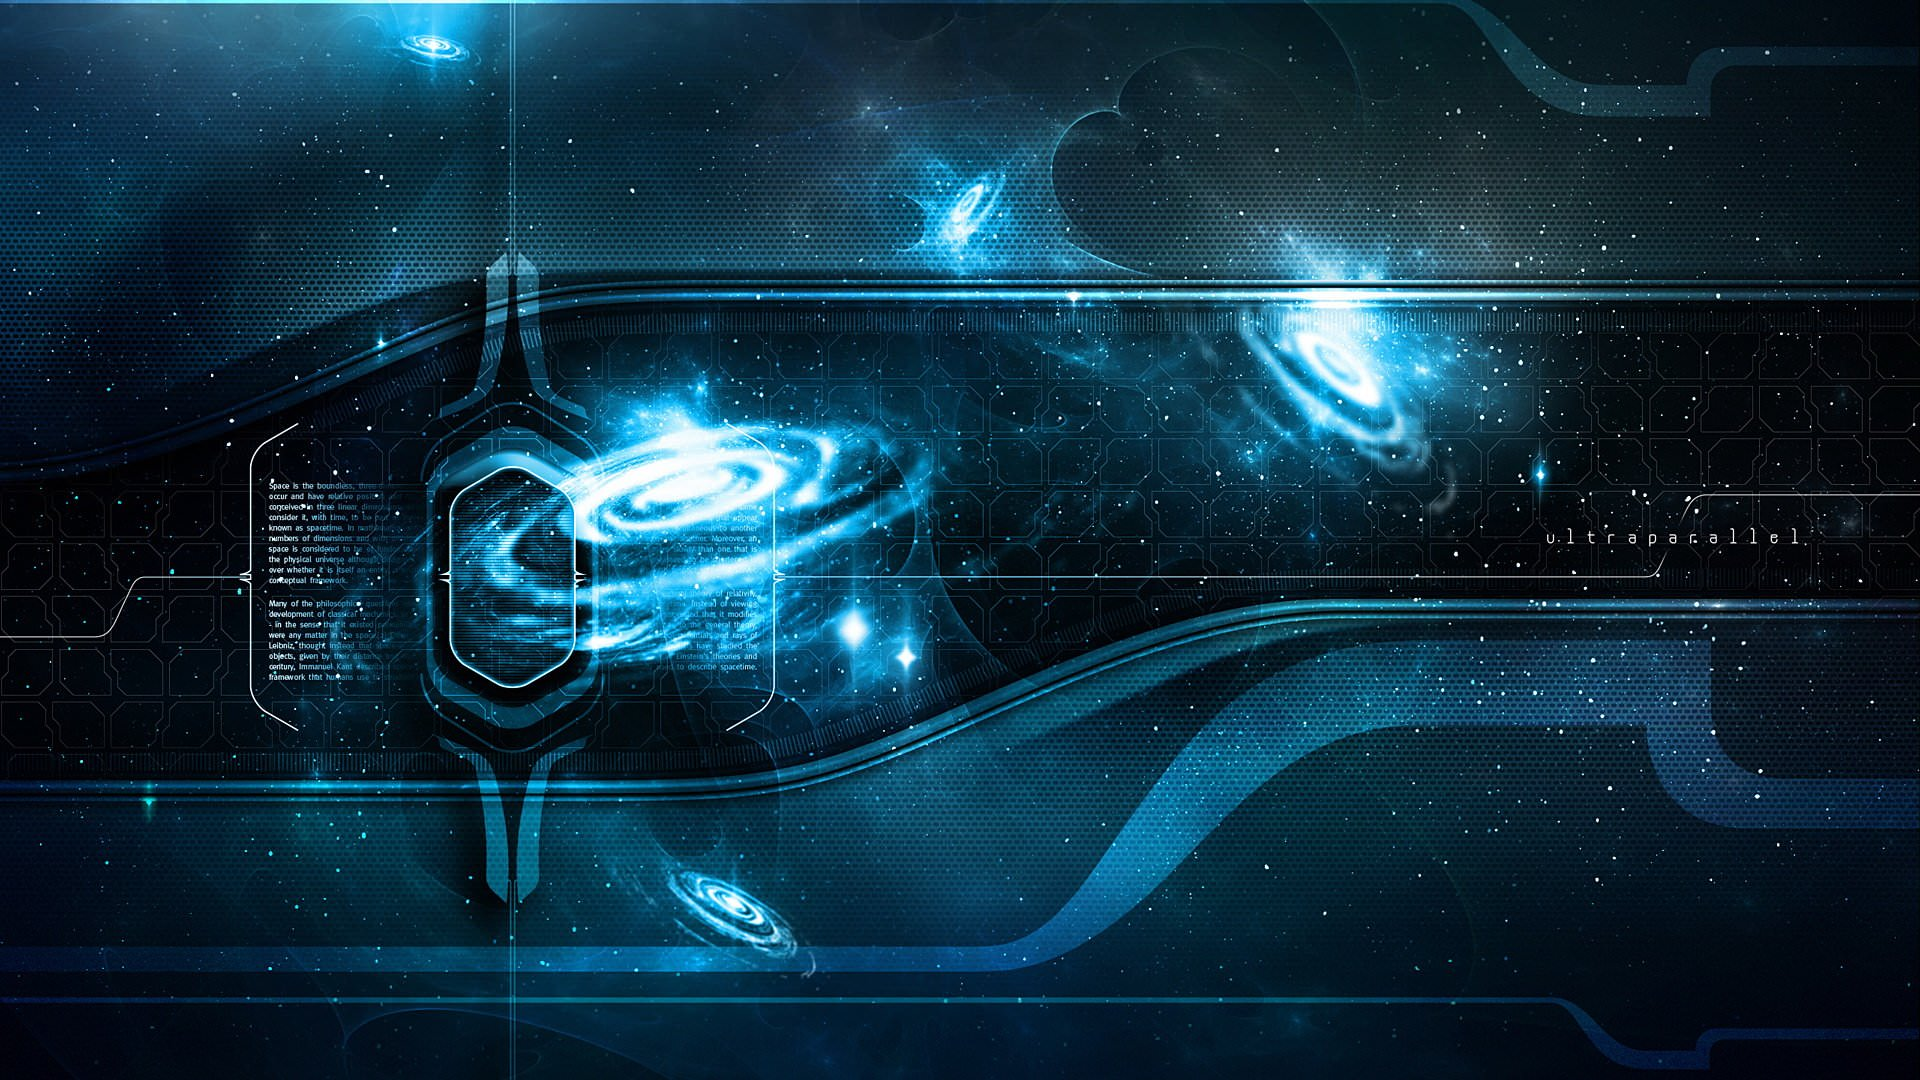 Abstract Technology Wallpapers Top Free Abstract Technology Backgrounds Wallpaperaccess